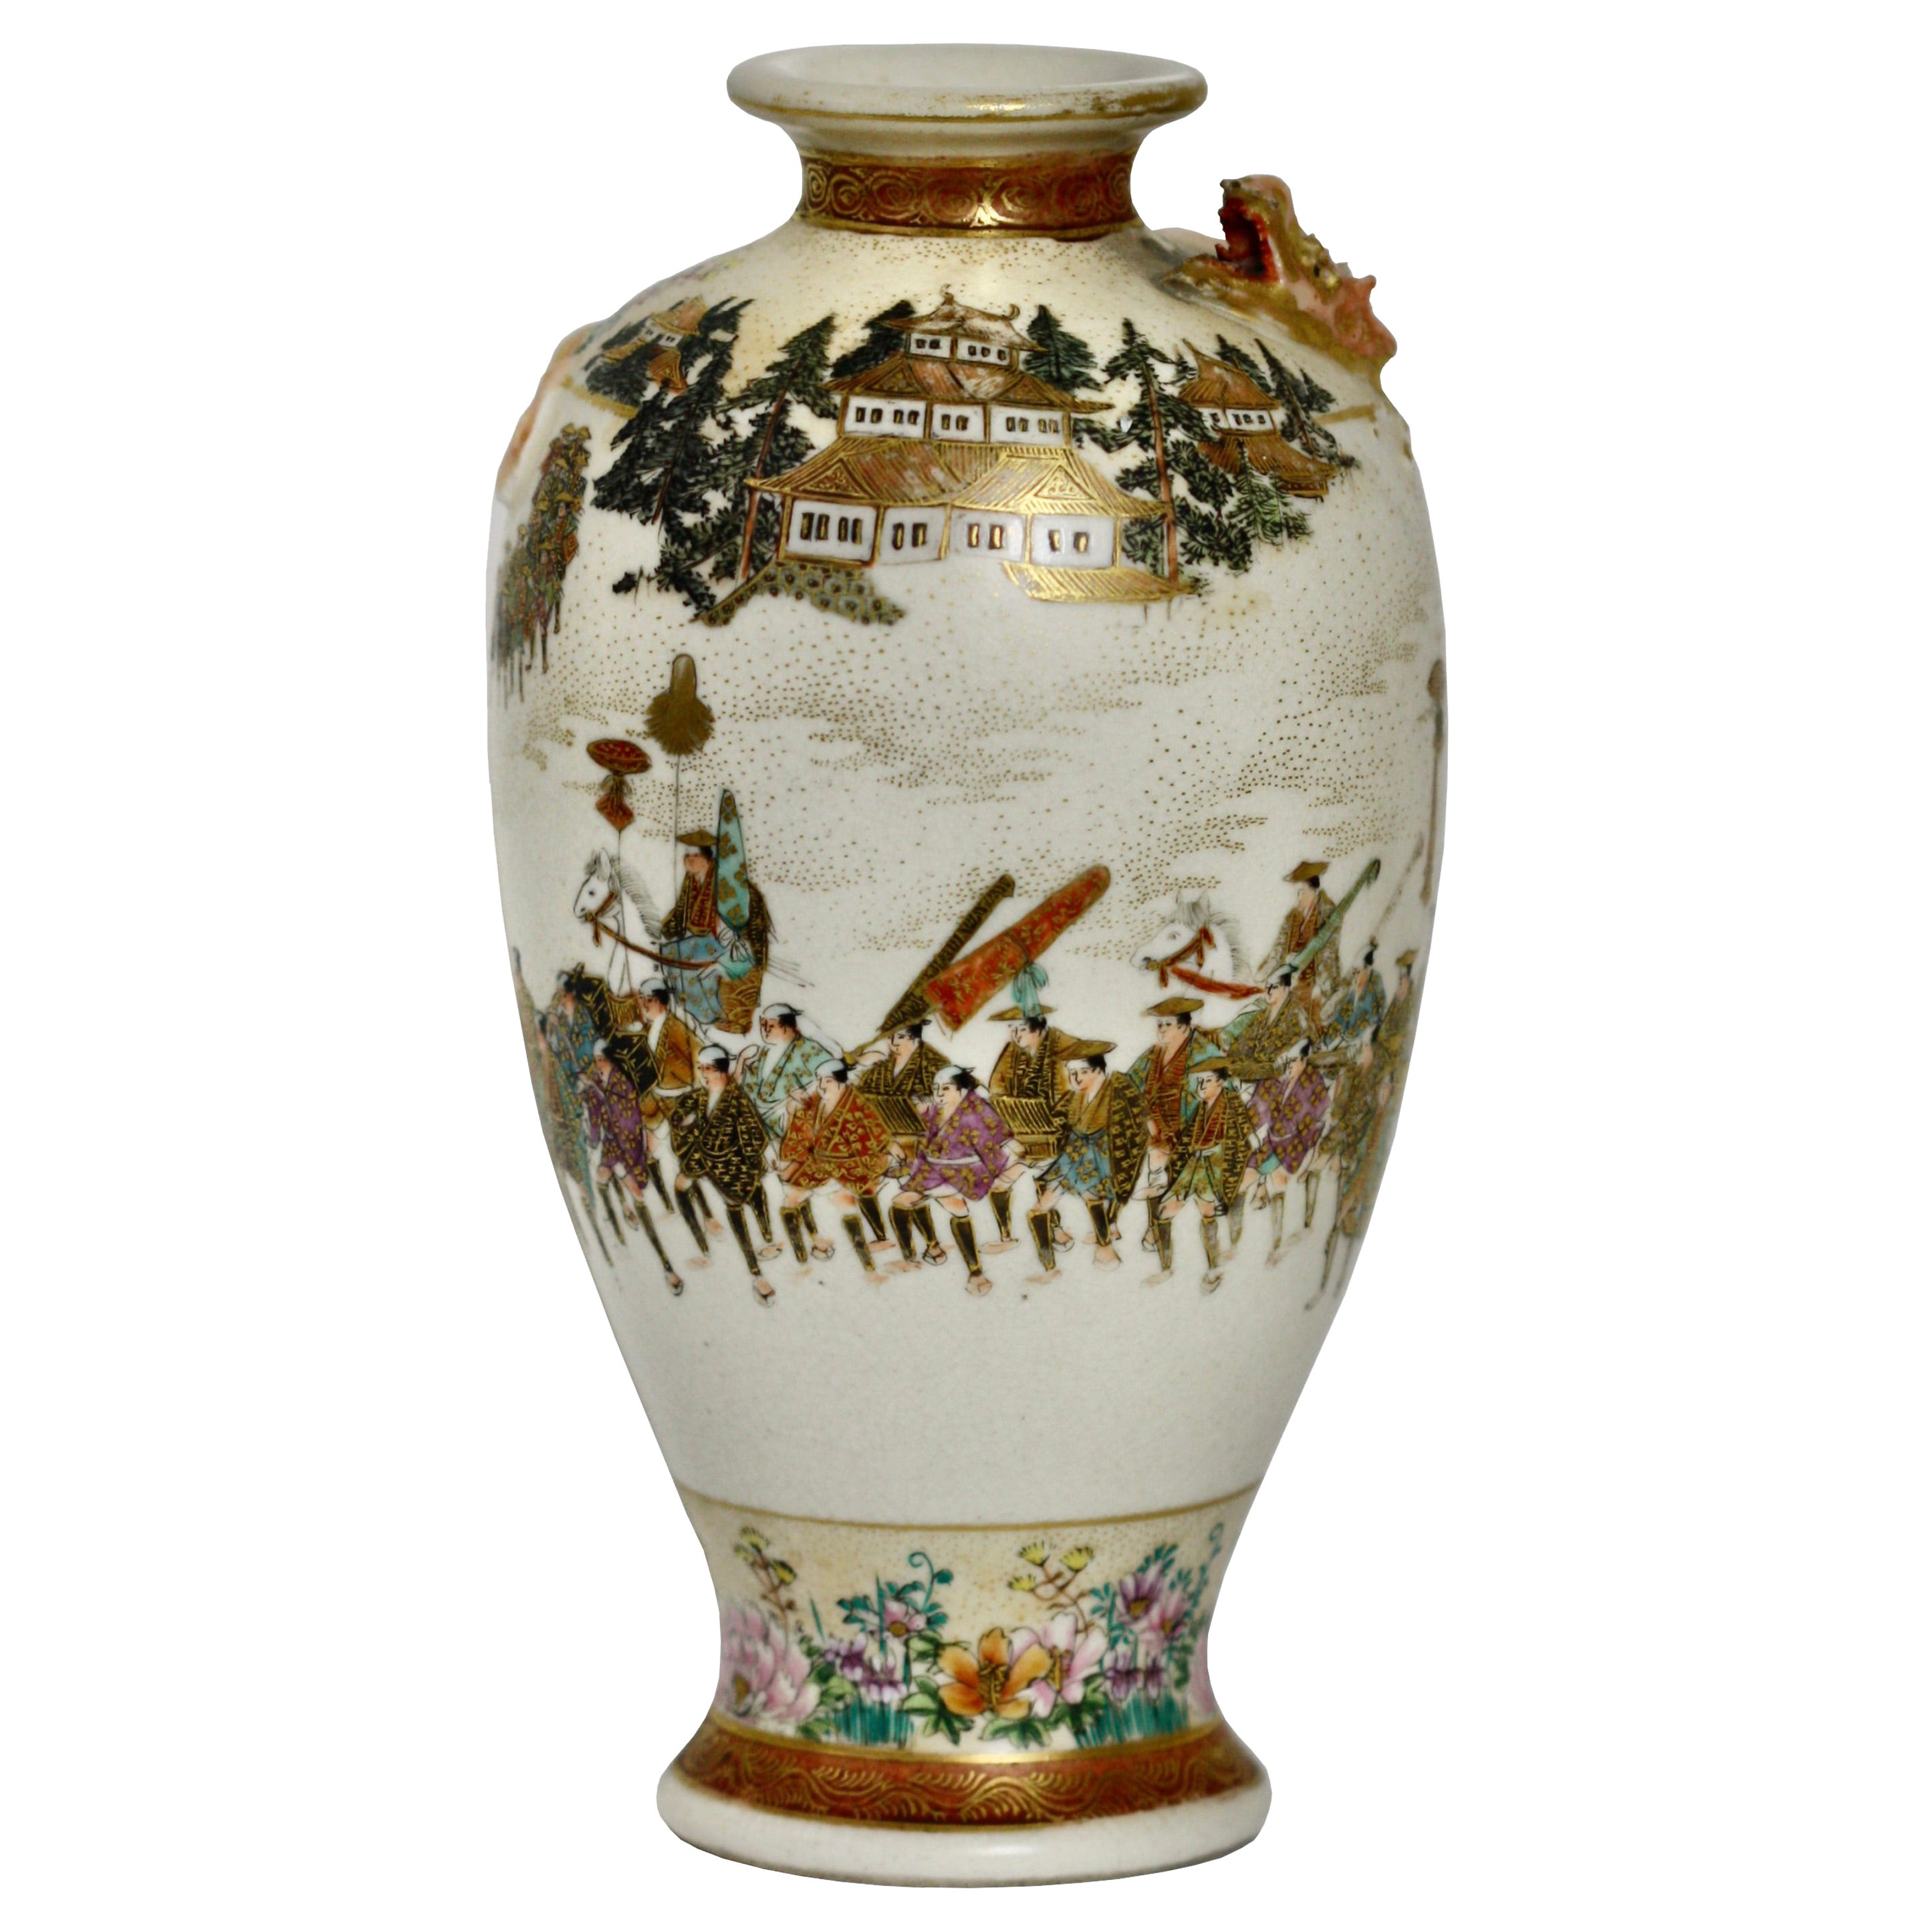 Japanese Satsuma Earthenware Vase, Meiji Period